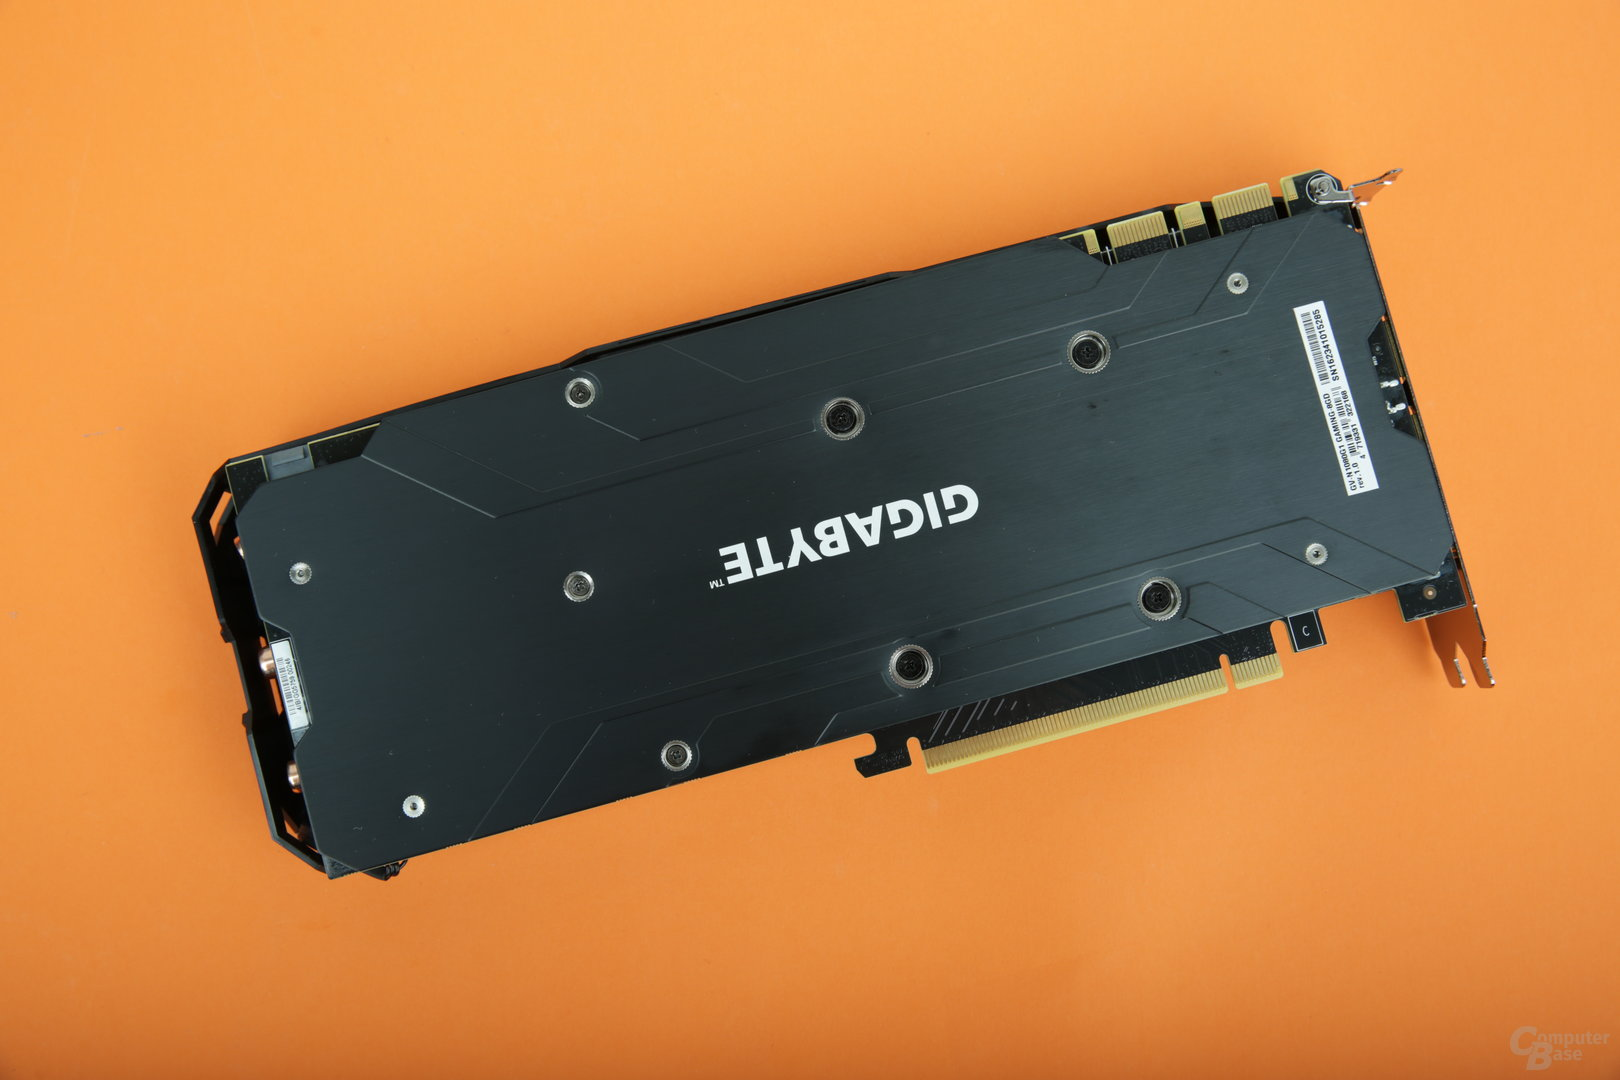 Gigabyte GeForce GTX 1080 G1 Gaming Backplate